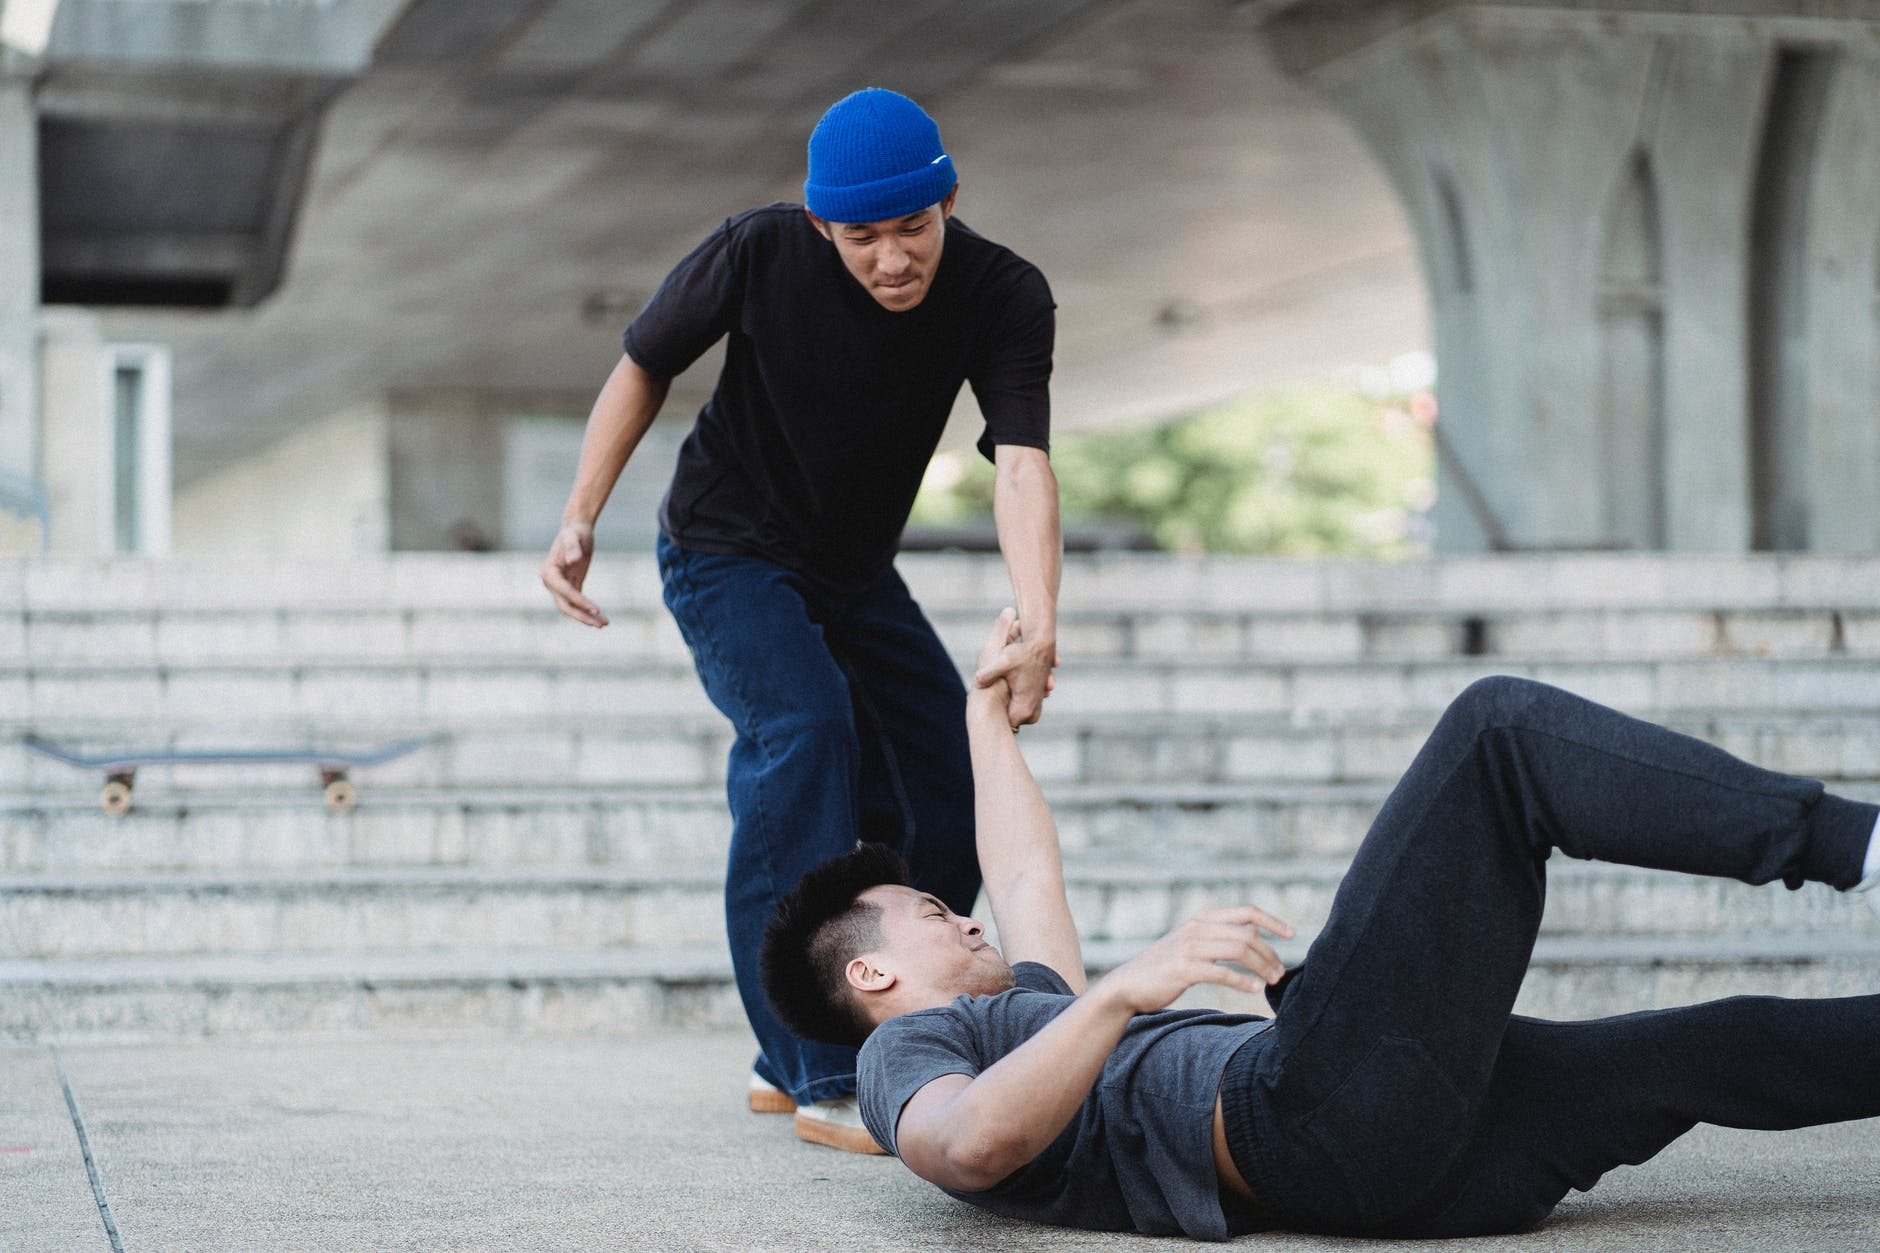 young asian man helping friend on pavement